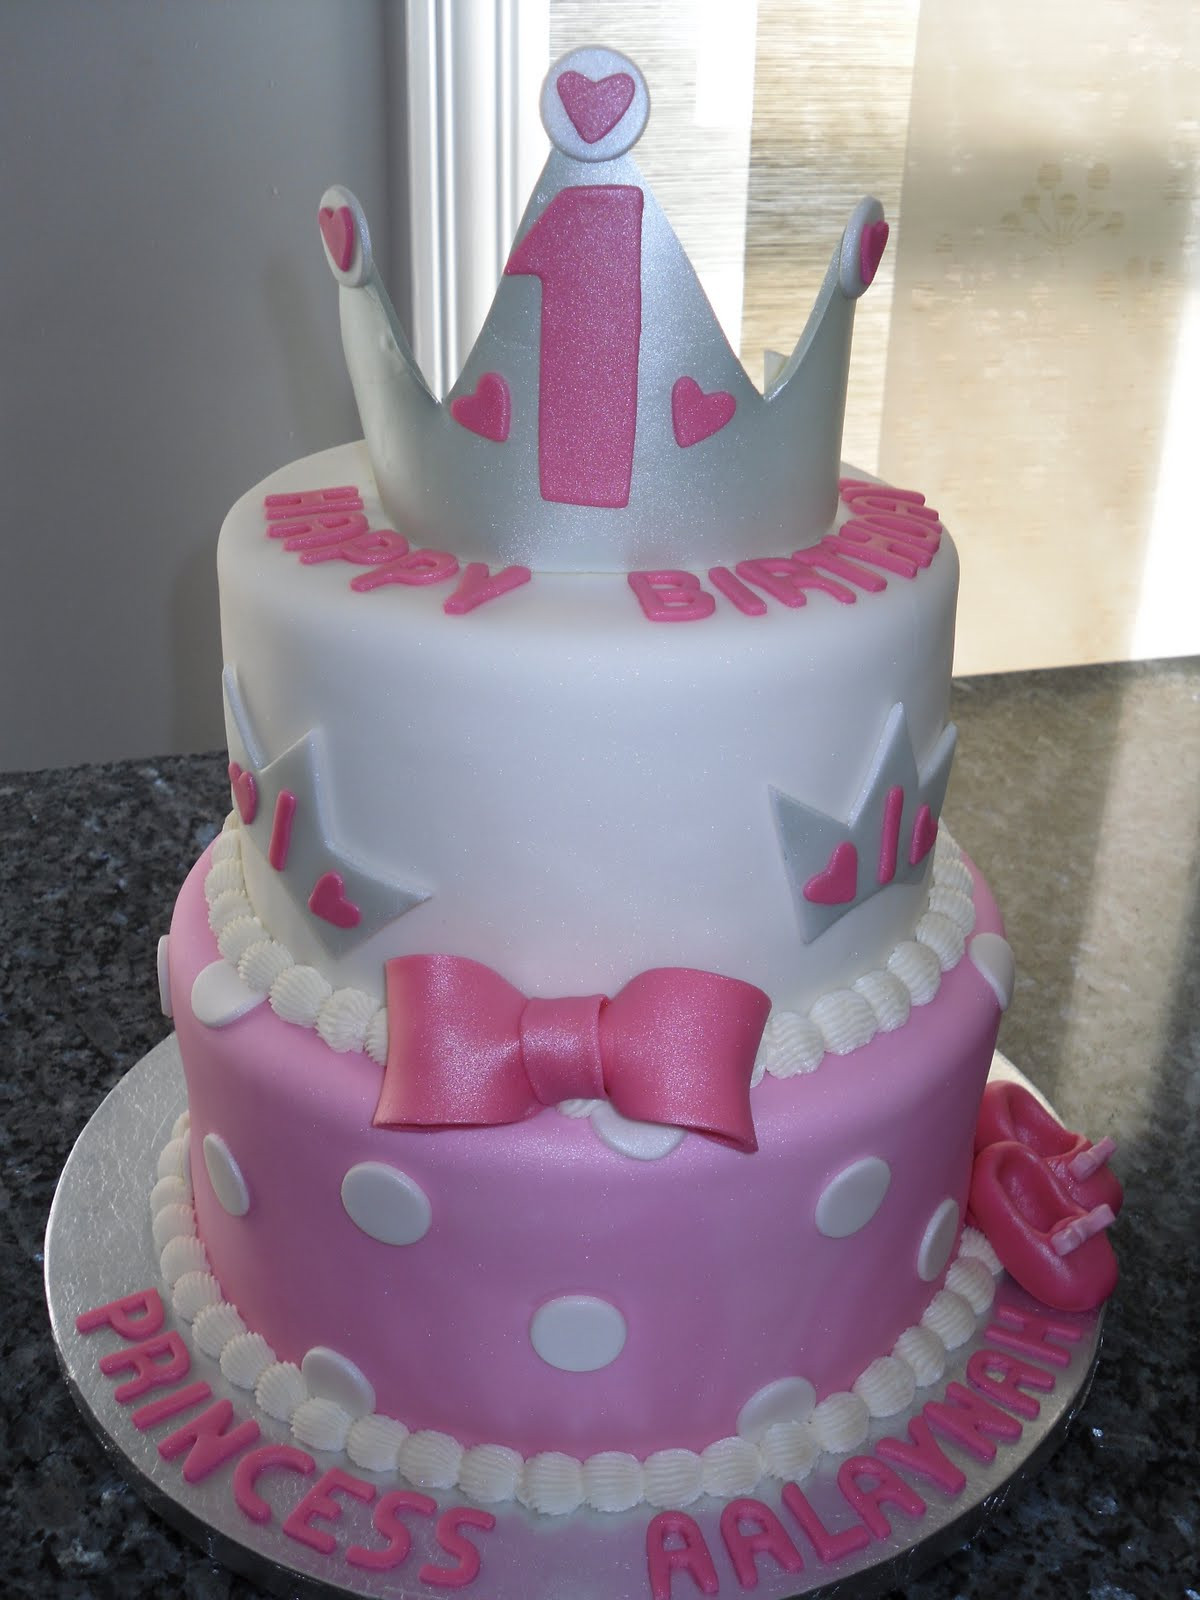 Birthday Cake For 1 Year Old  Carat Cakes Two Very Special e Year Old Birthdays